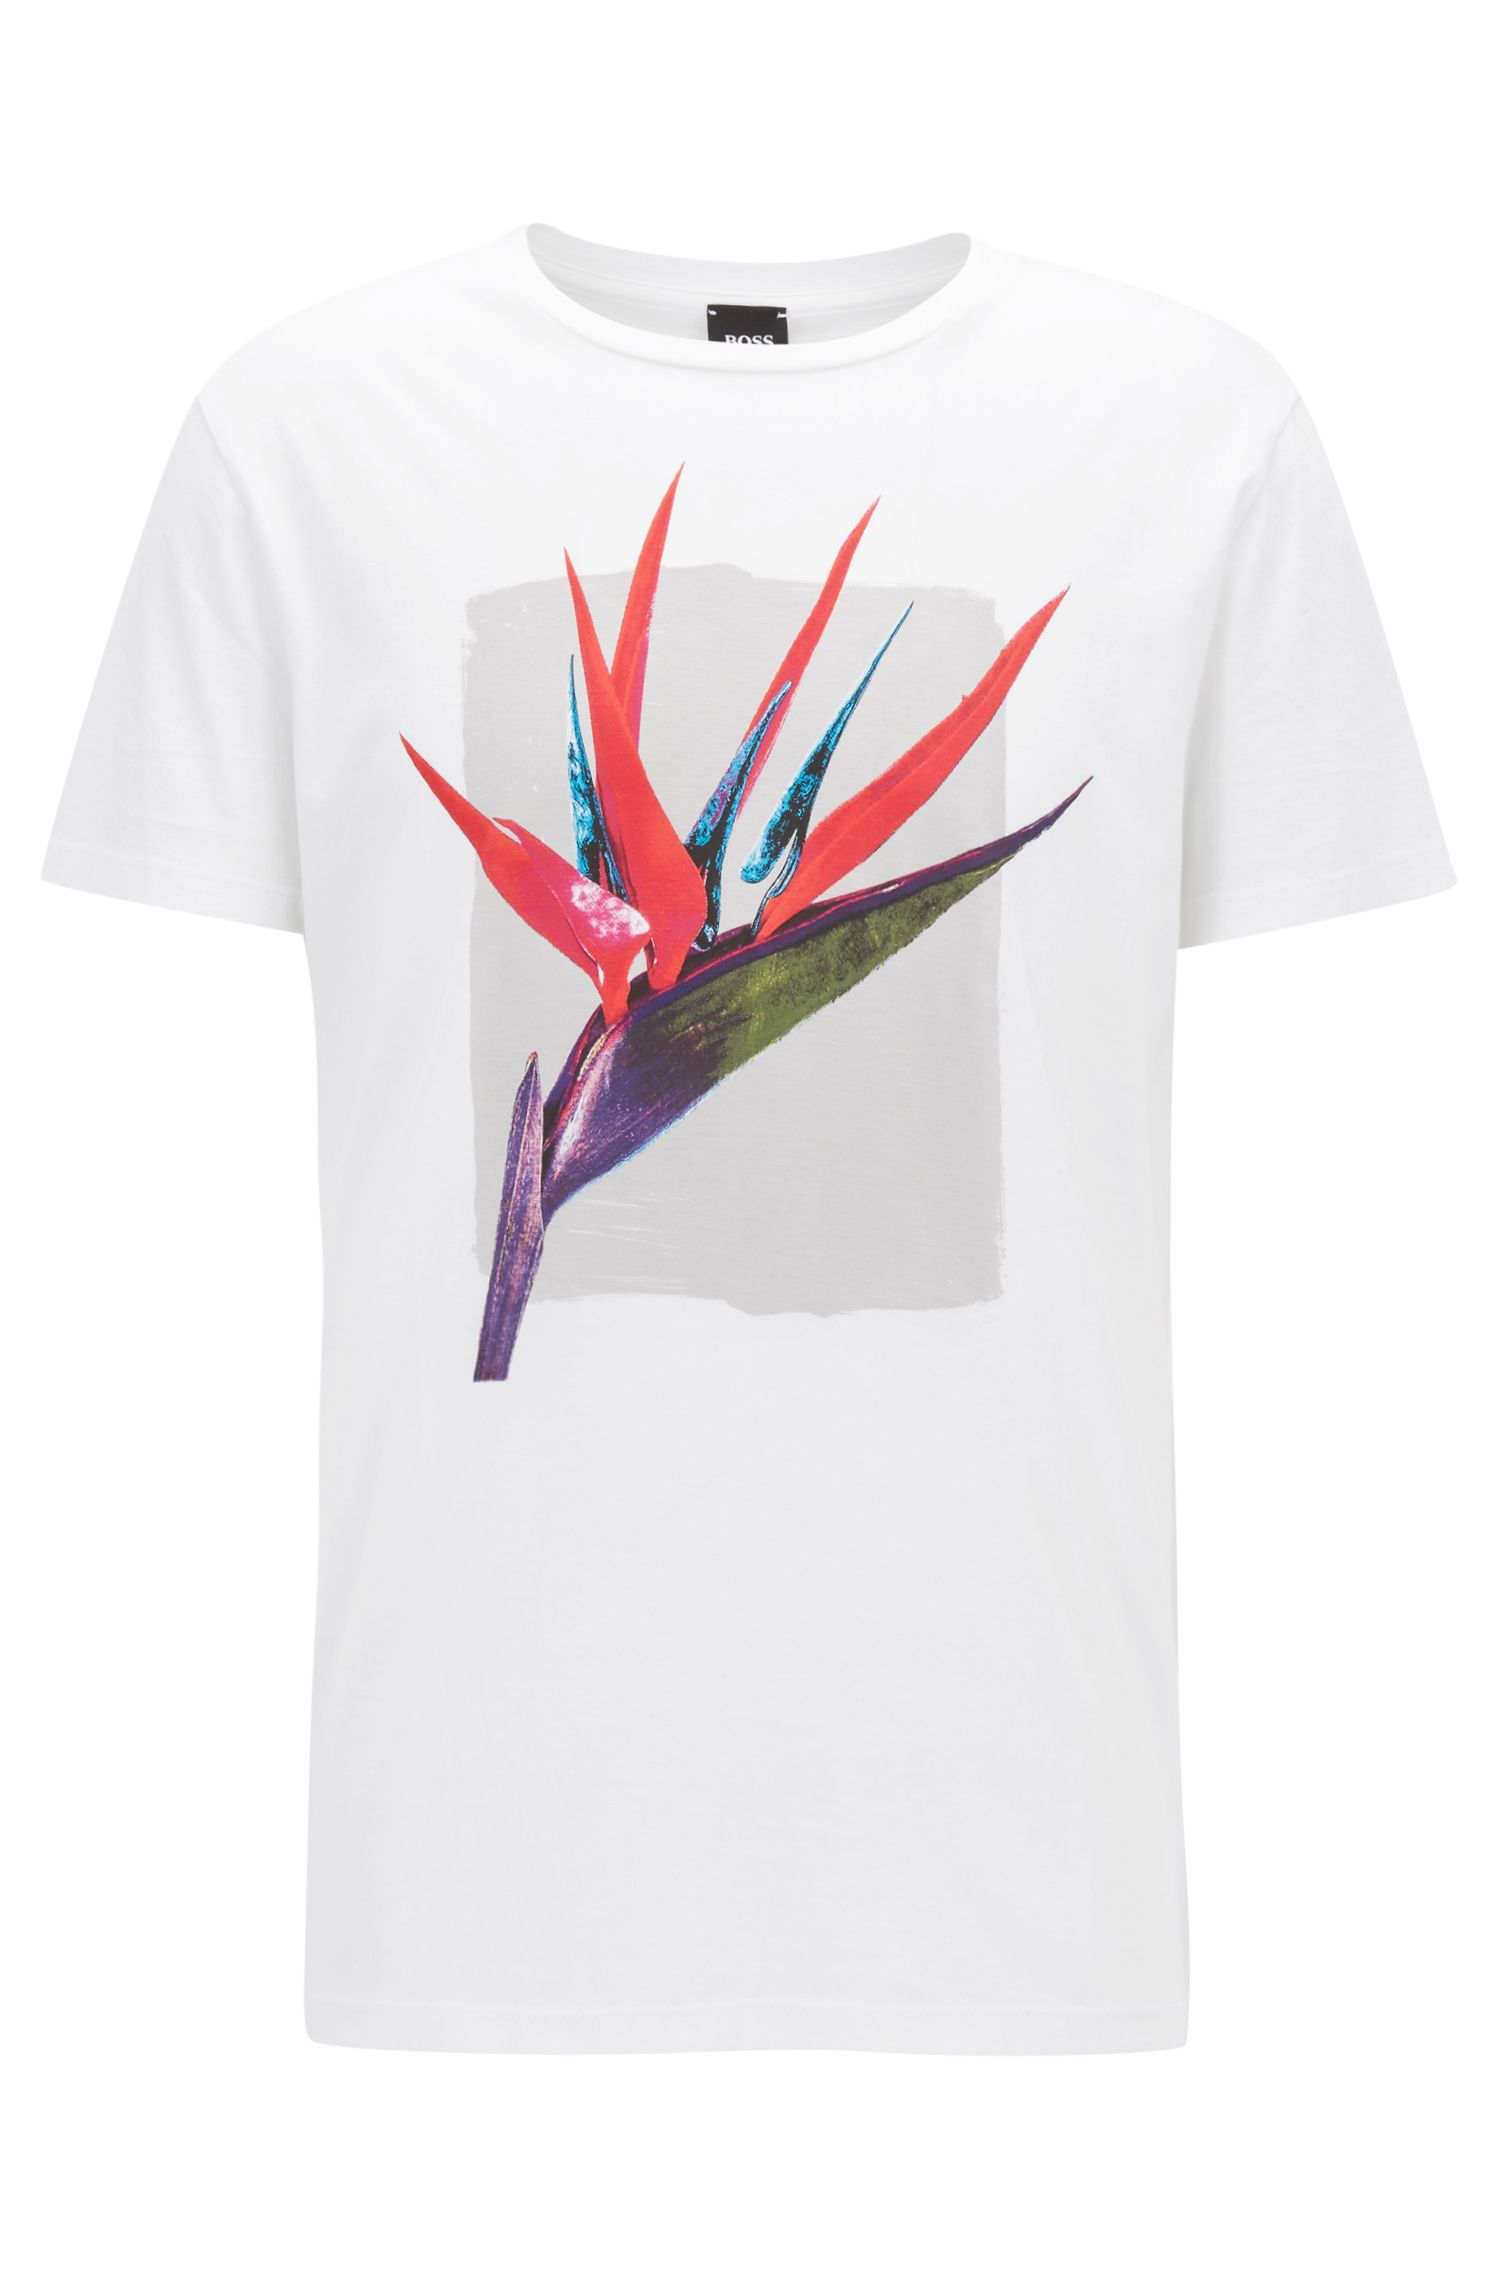 Bird Of Paradise Graphic T-Shirt | Timen